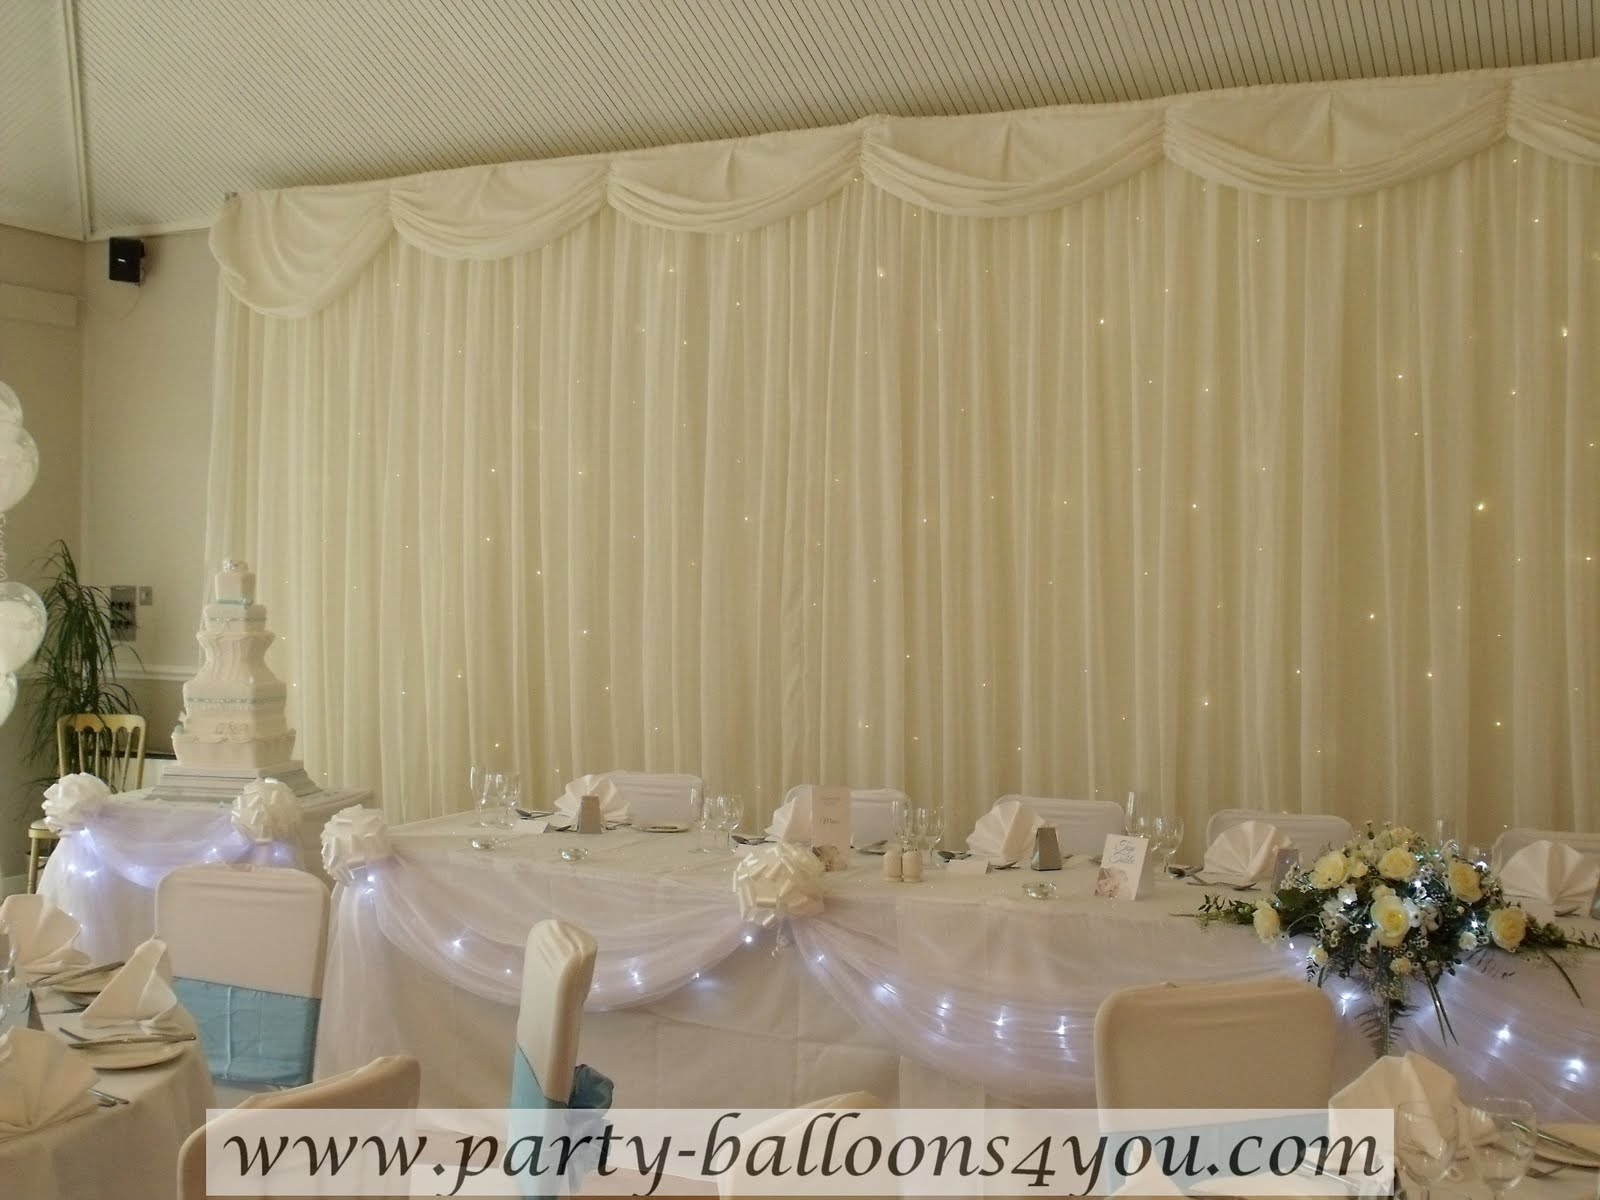 Beautiful Chair Cover Hire Oxfordshire Padded Folding Party Balloons 4 You Wedding Decorations At Chewton Place